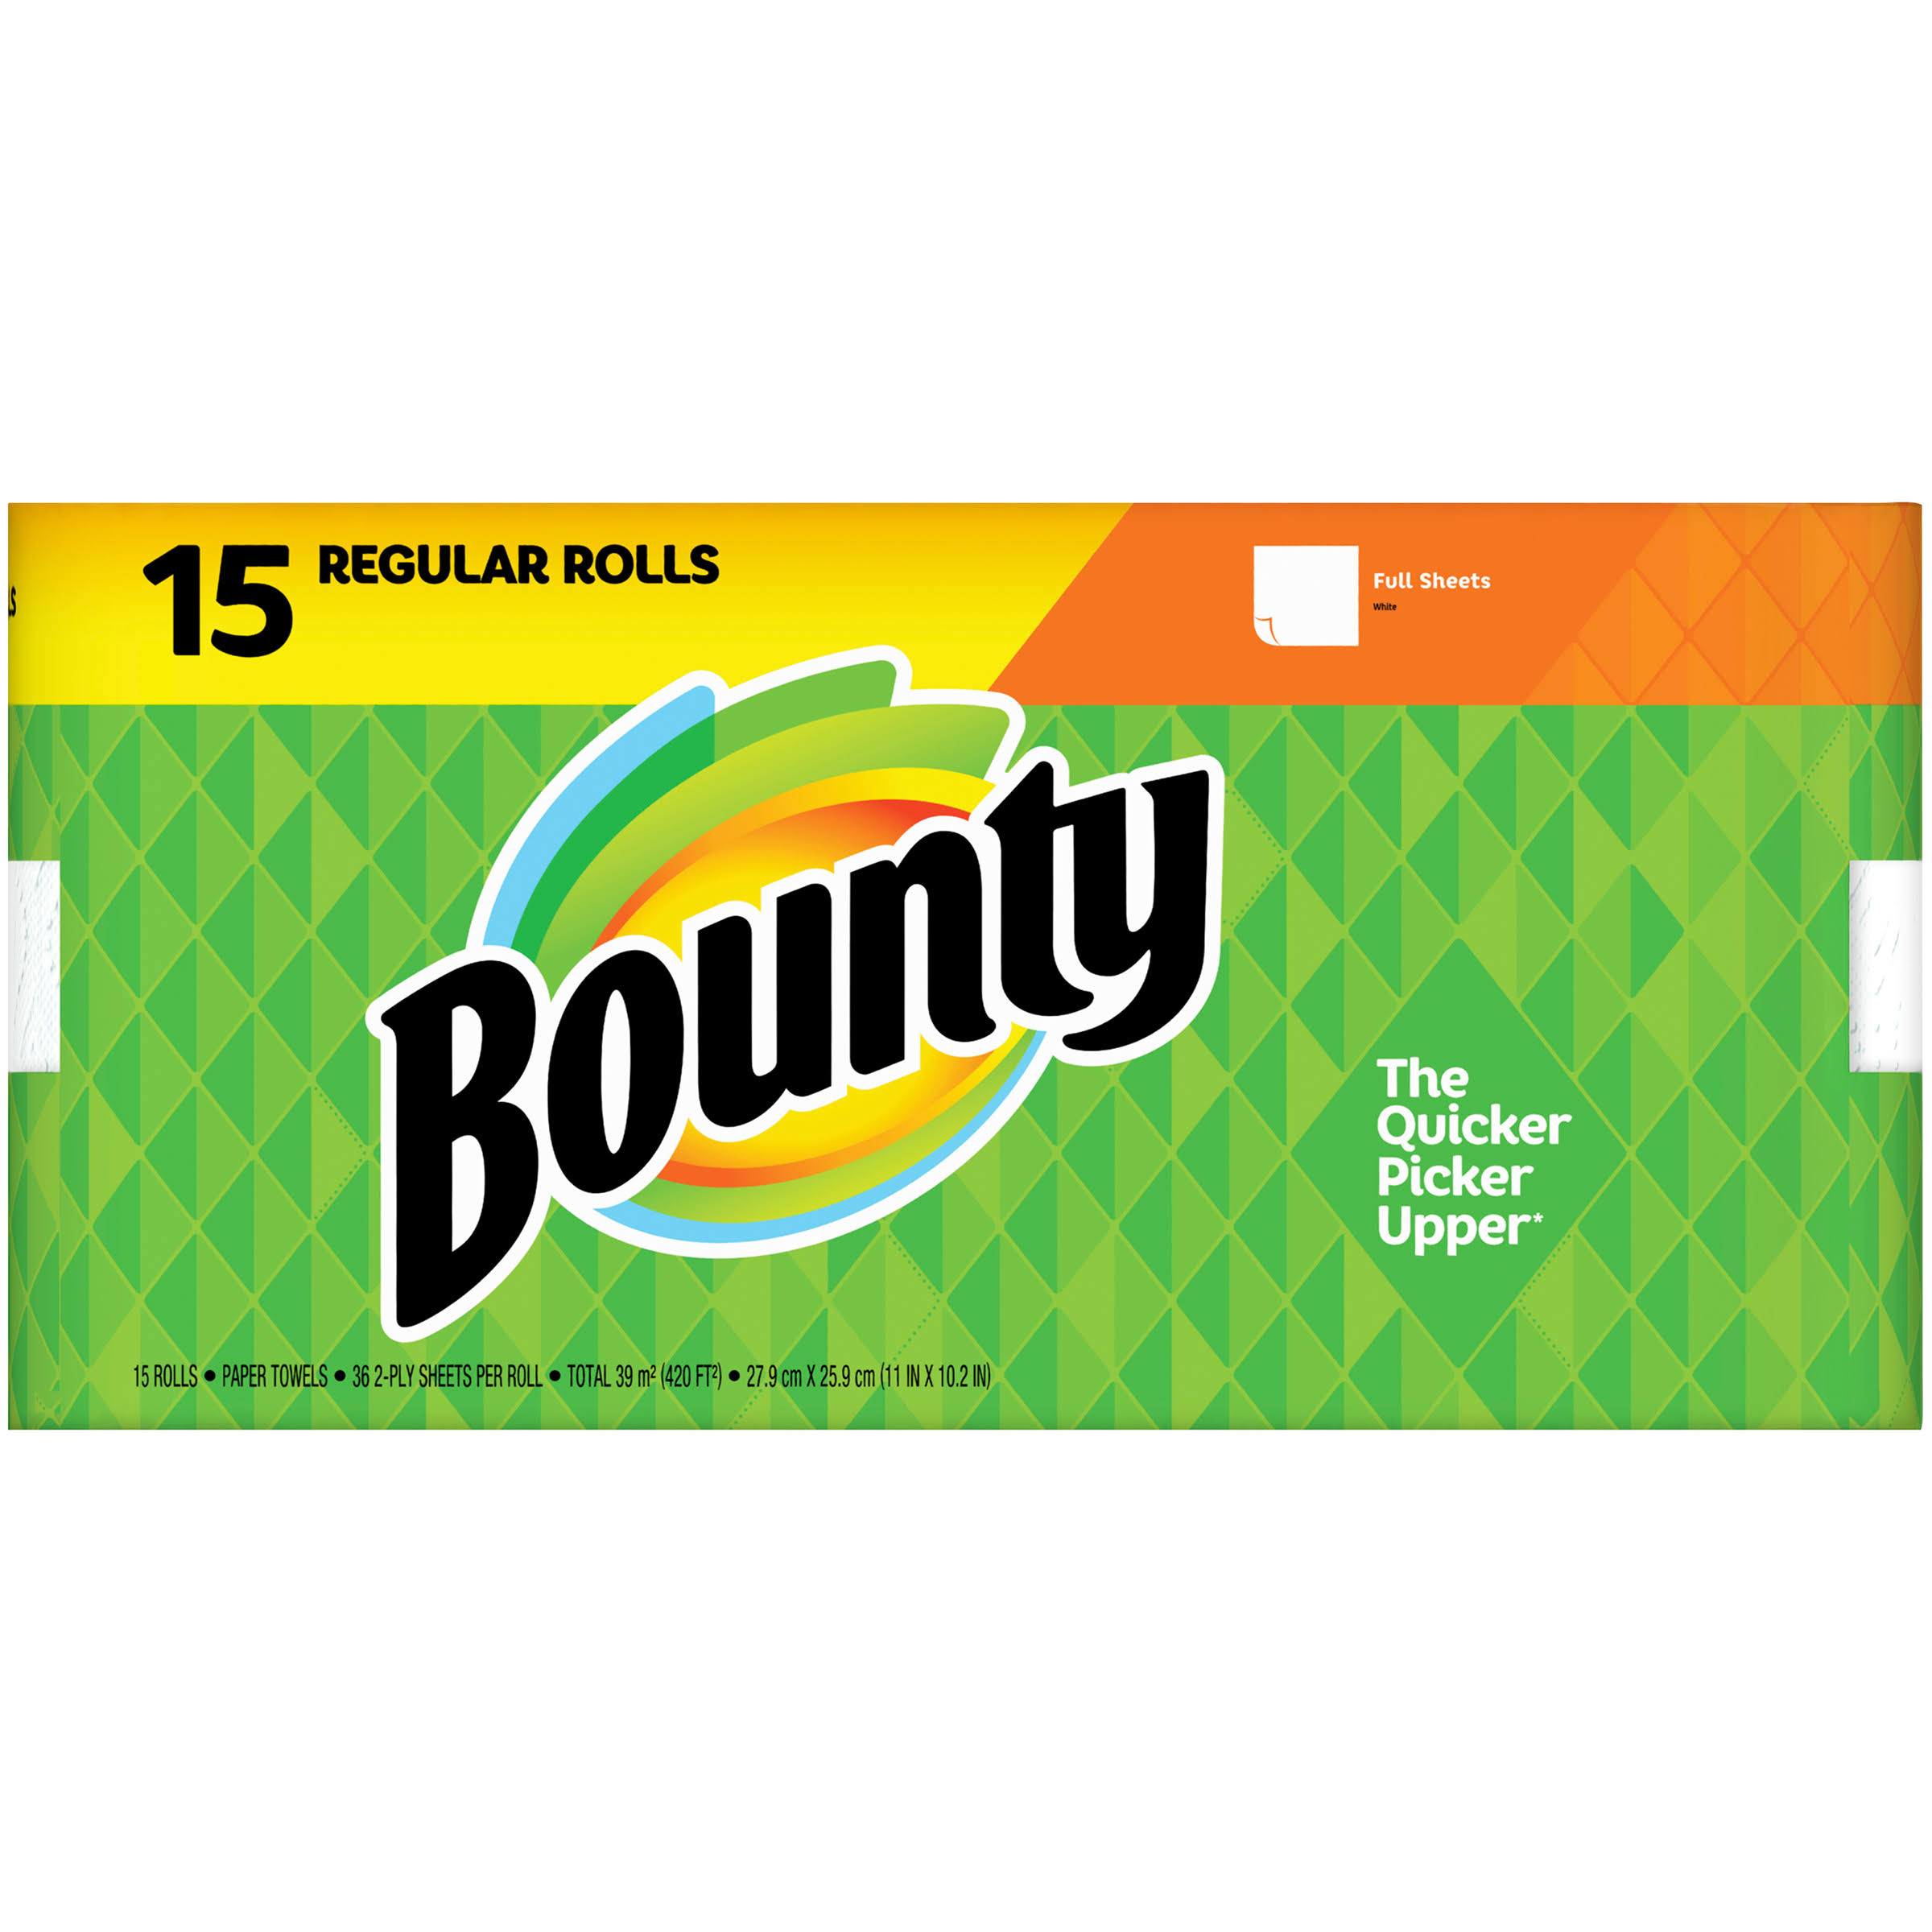 Bounty Paper Towels, Full Sheets, White, 2-Ply - 15 rolls